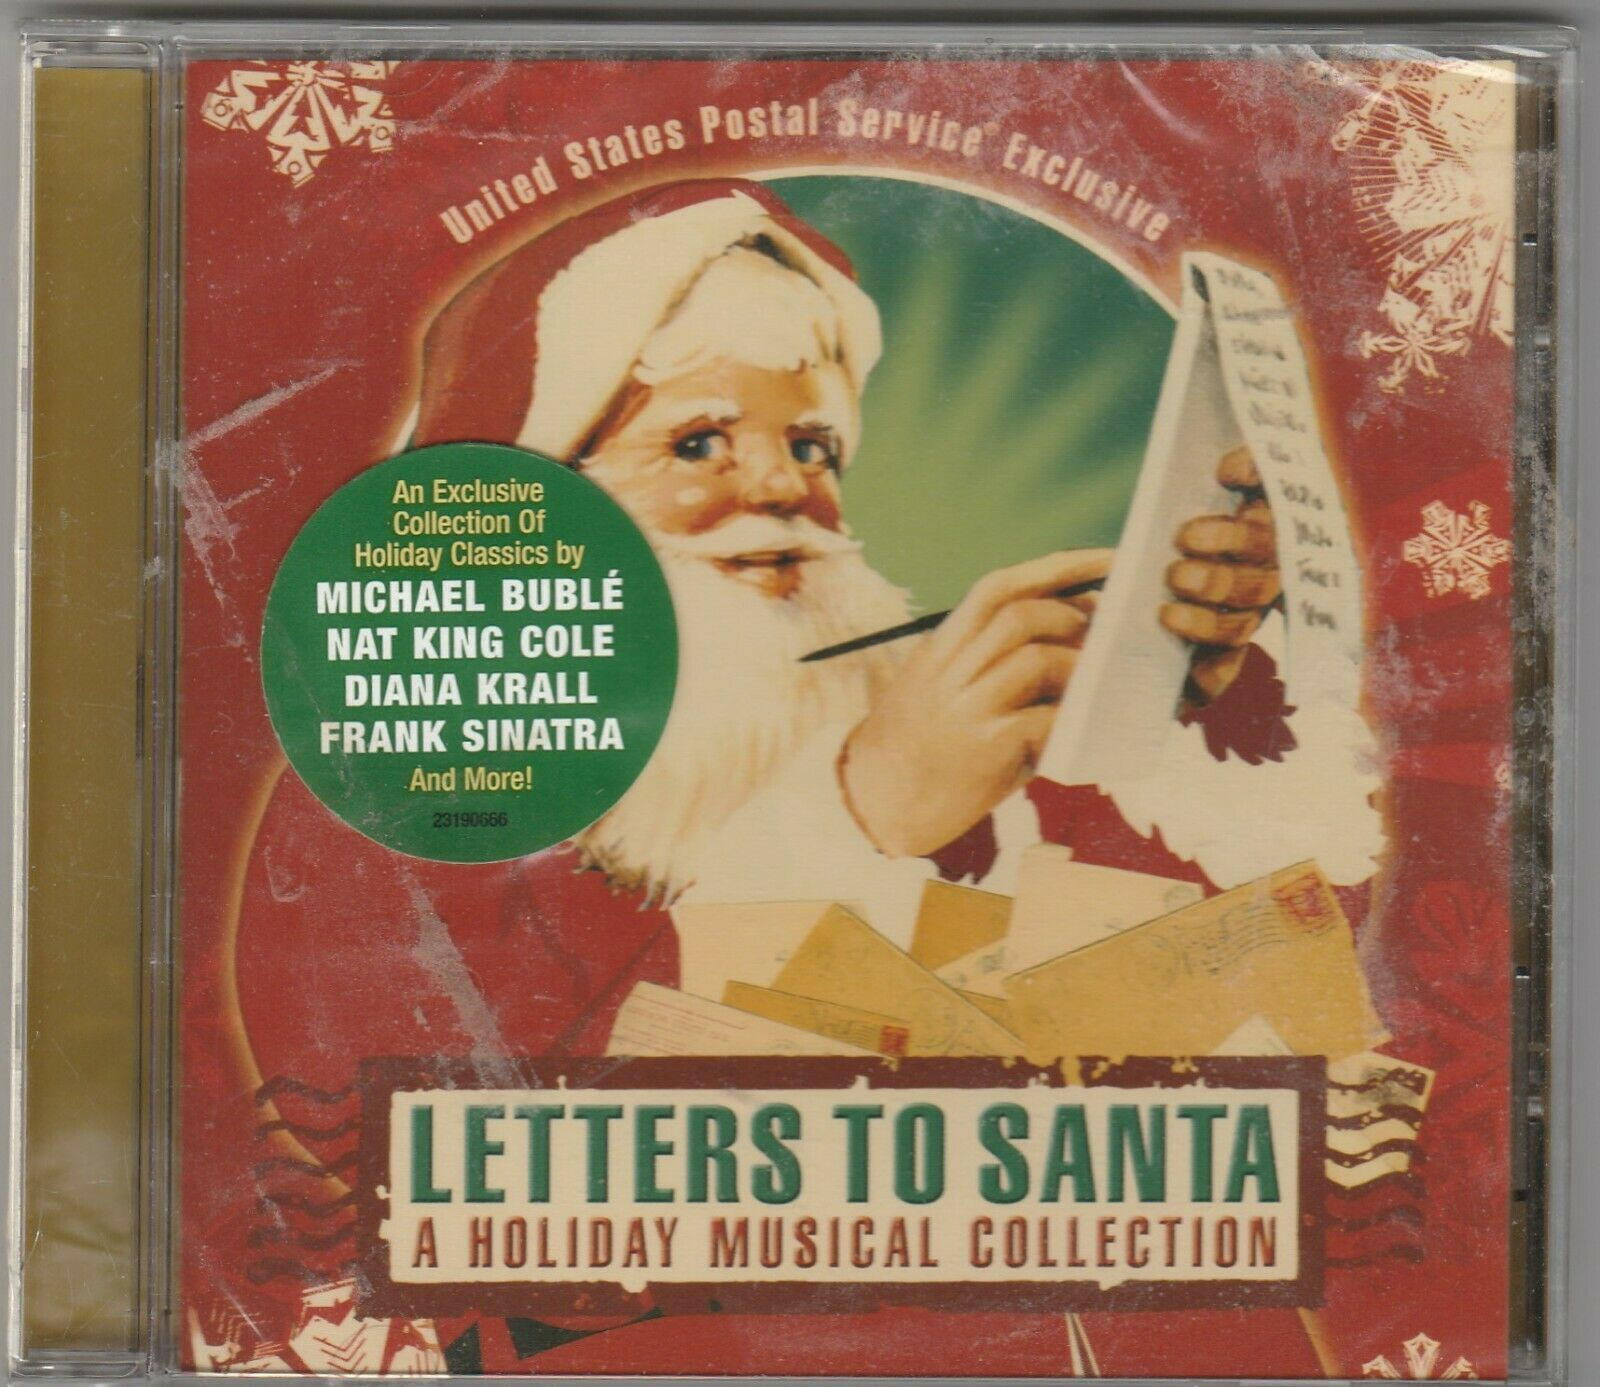 Primary image for Letters to Santa  A Holiday Musical Collection by the USPS & Concord Records